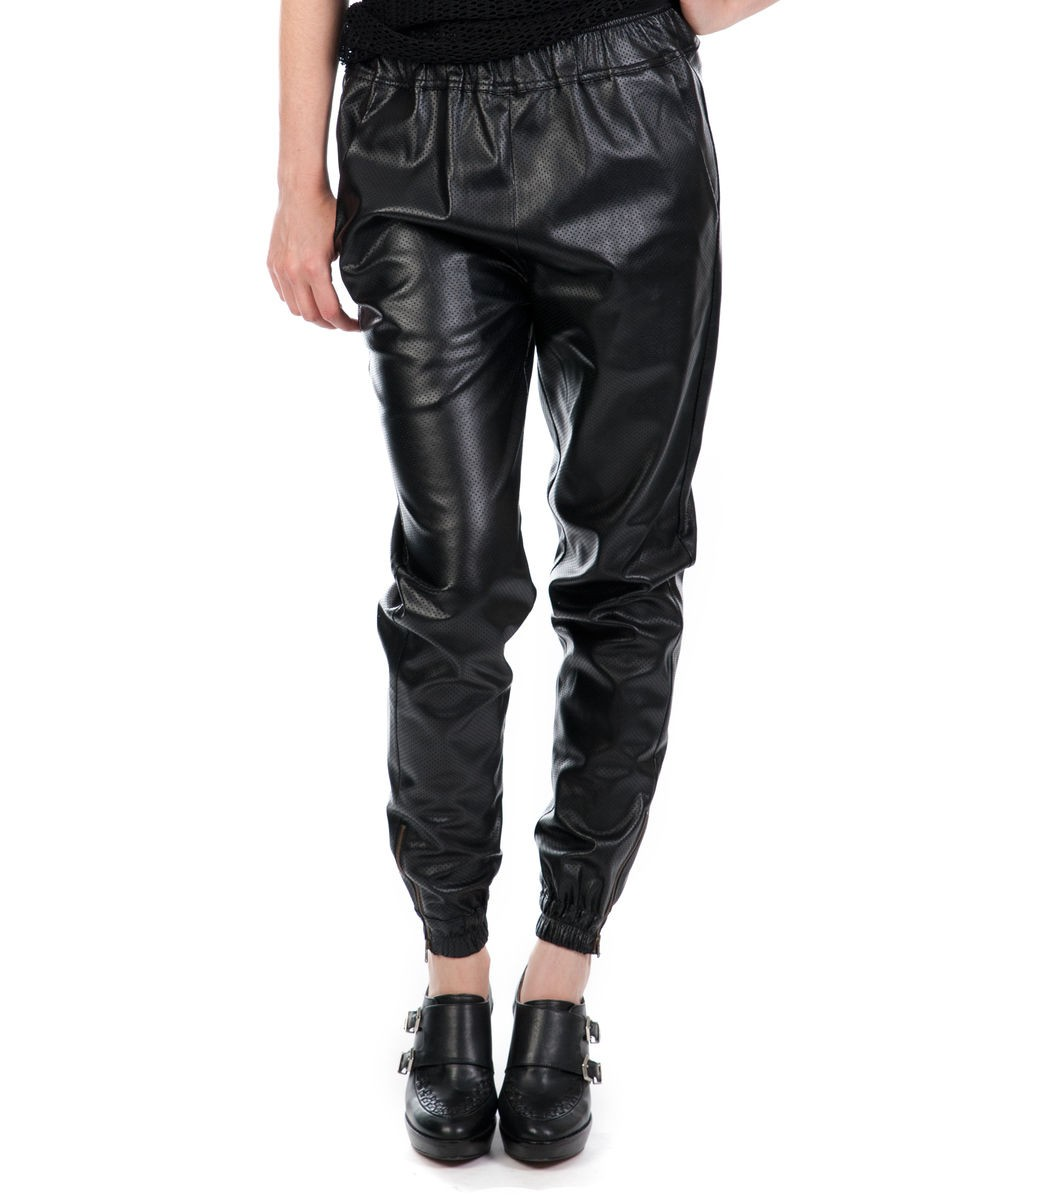 Perforated Vegan Pants